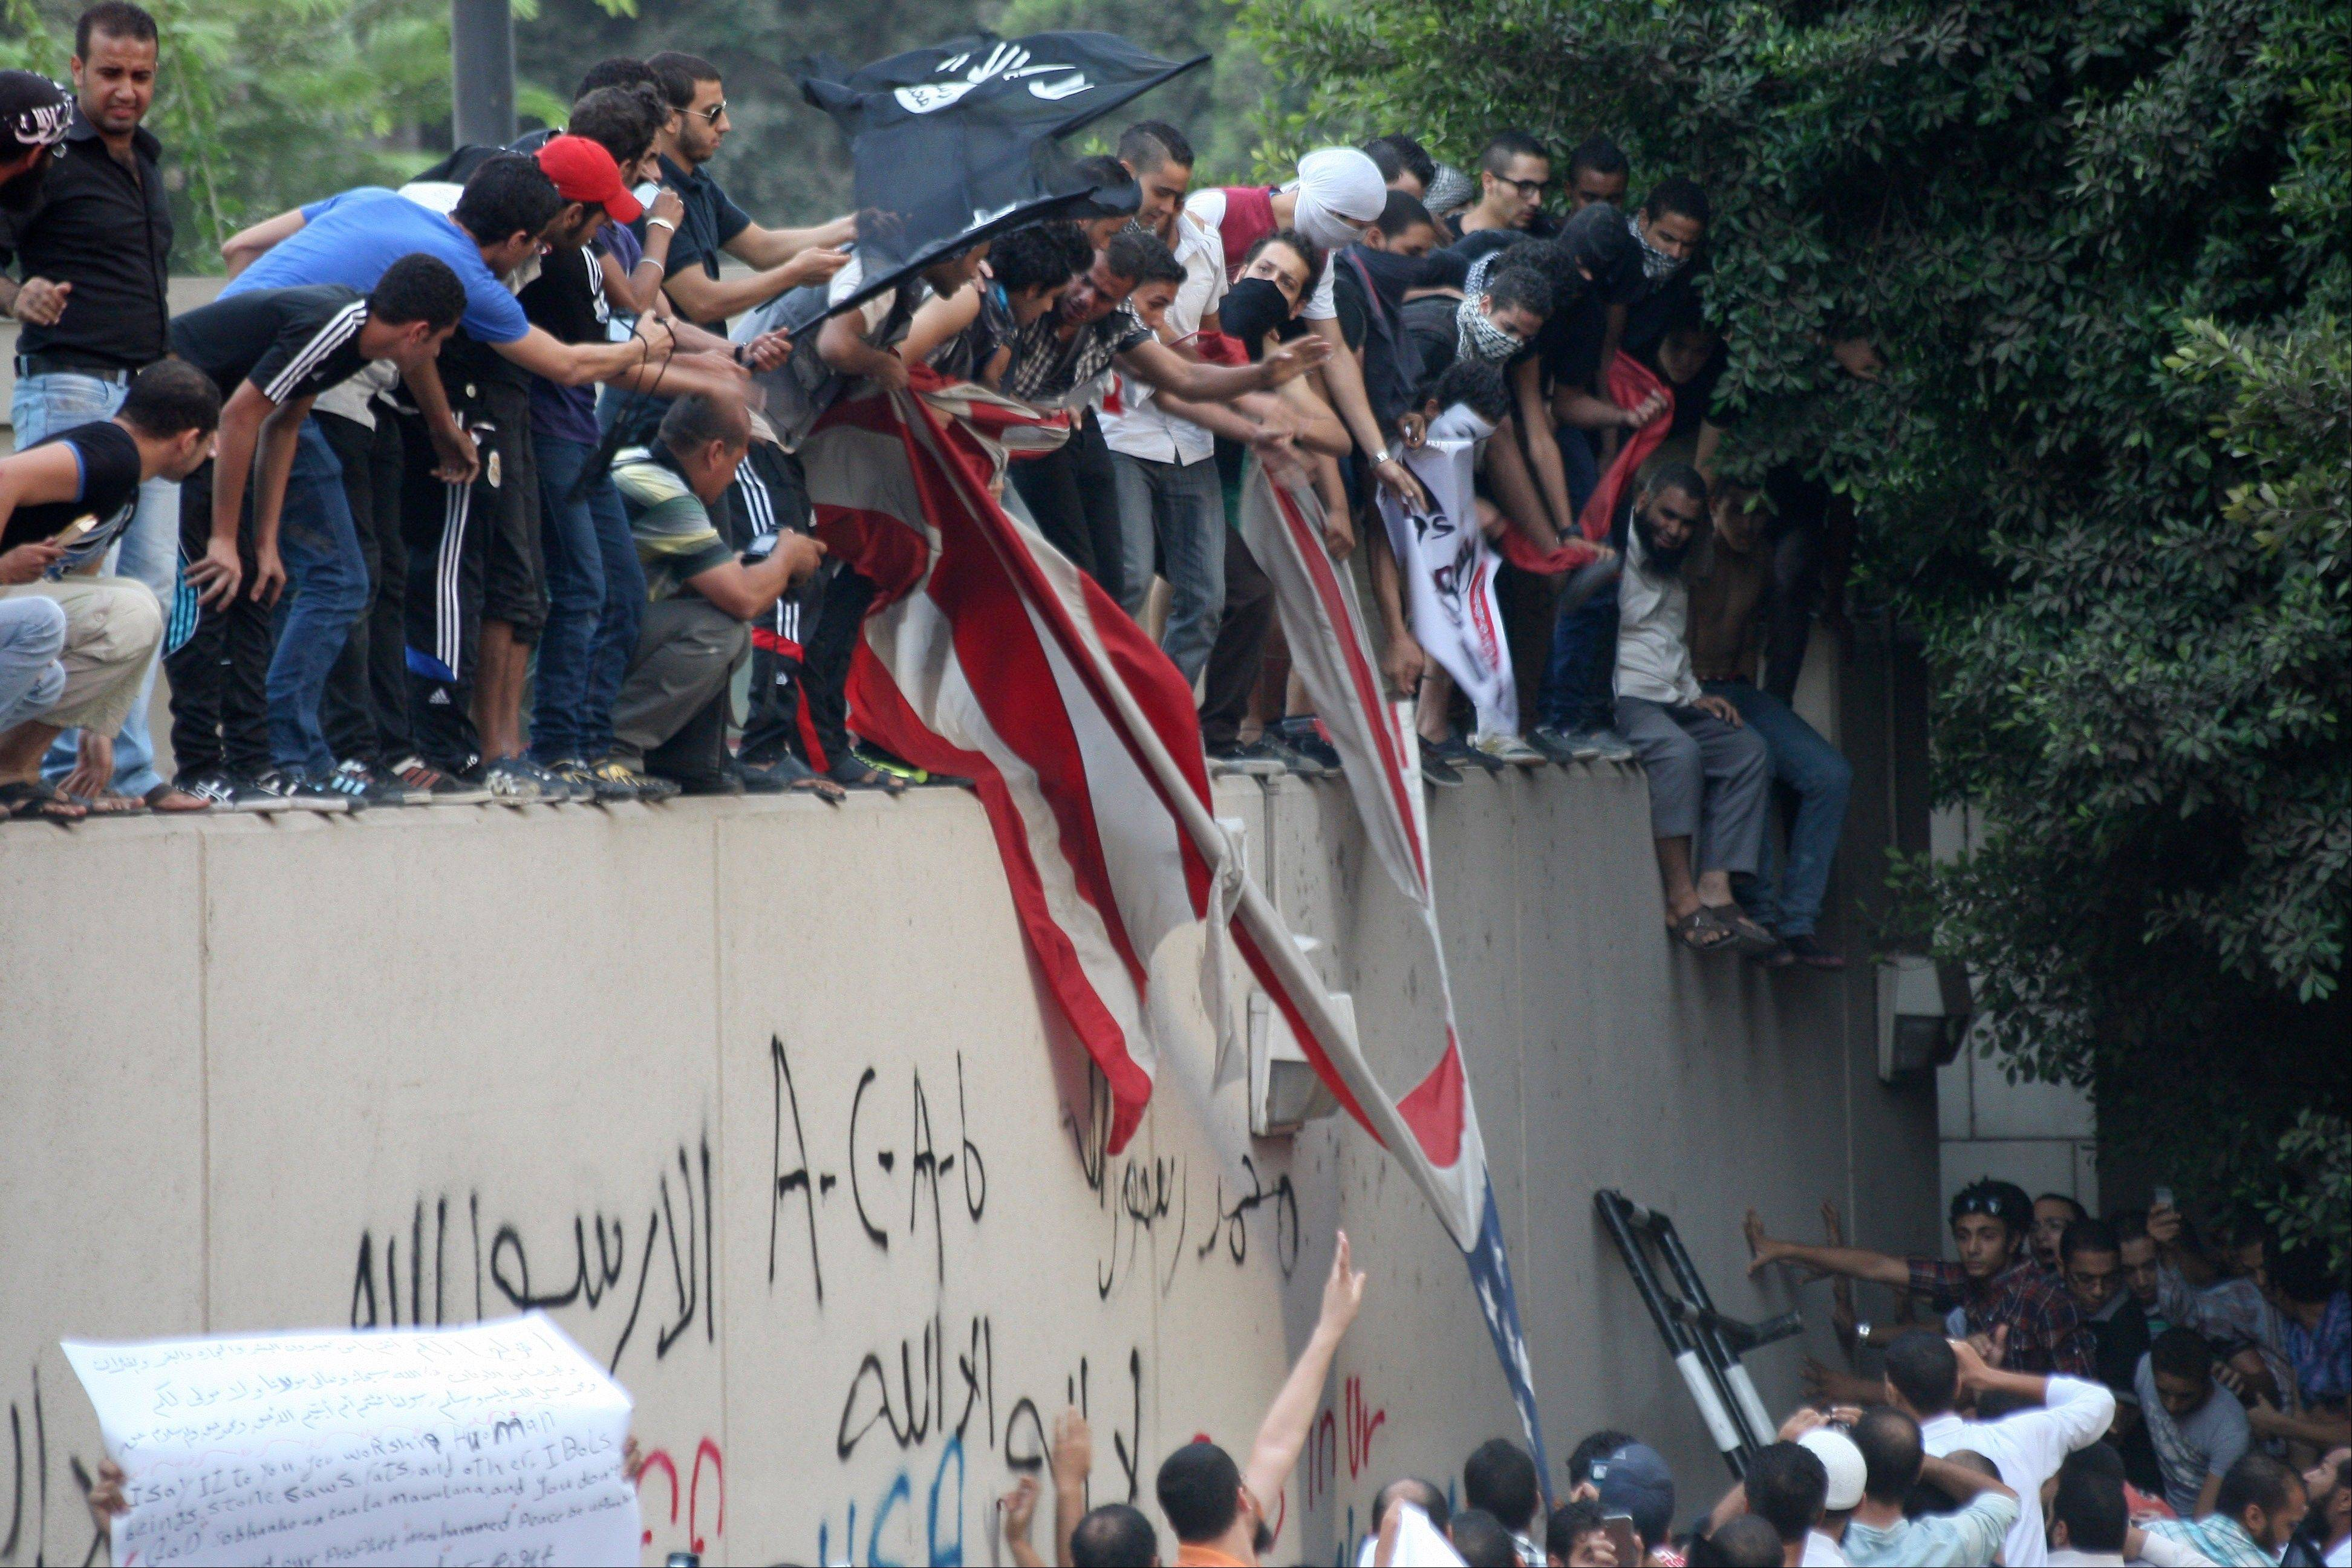 Protesters destroy an American flag pulled down Tuesday from the U.S. embassy in Cairo, Egypt.